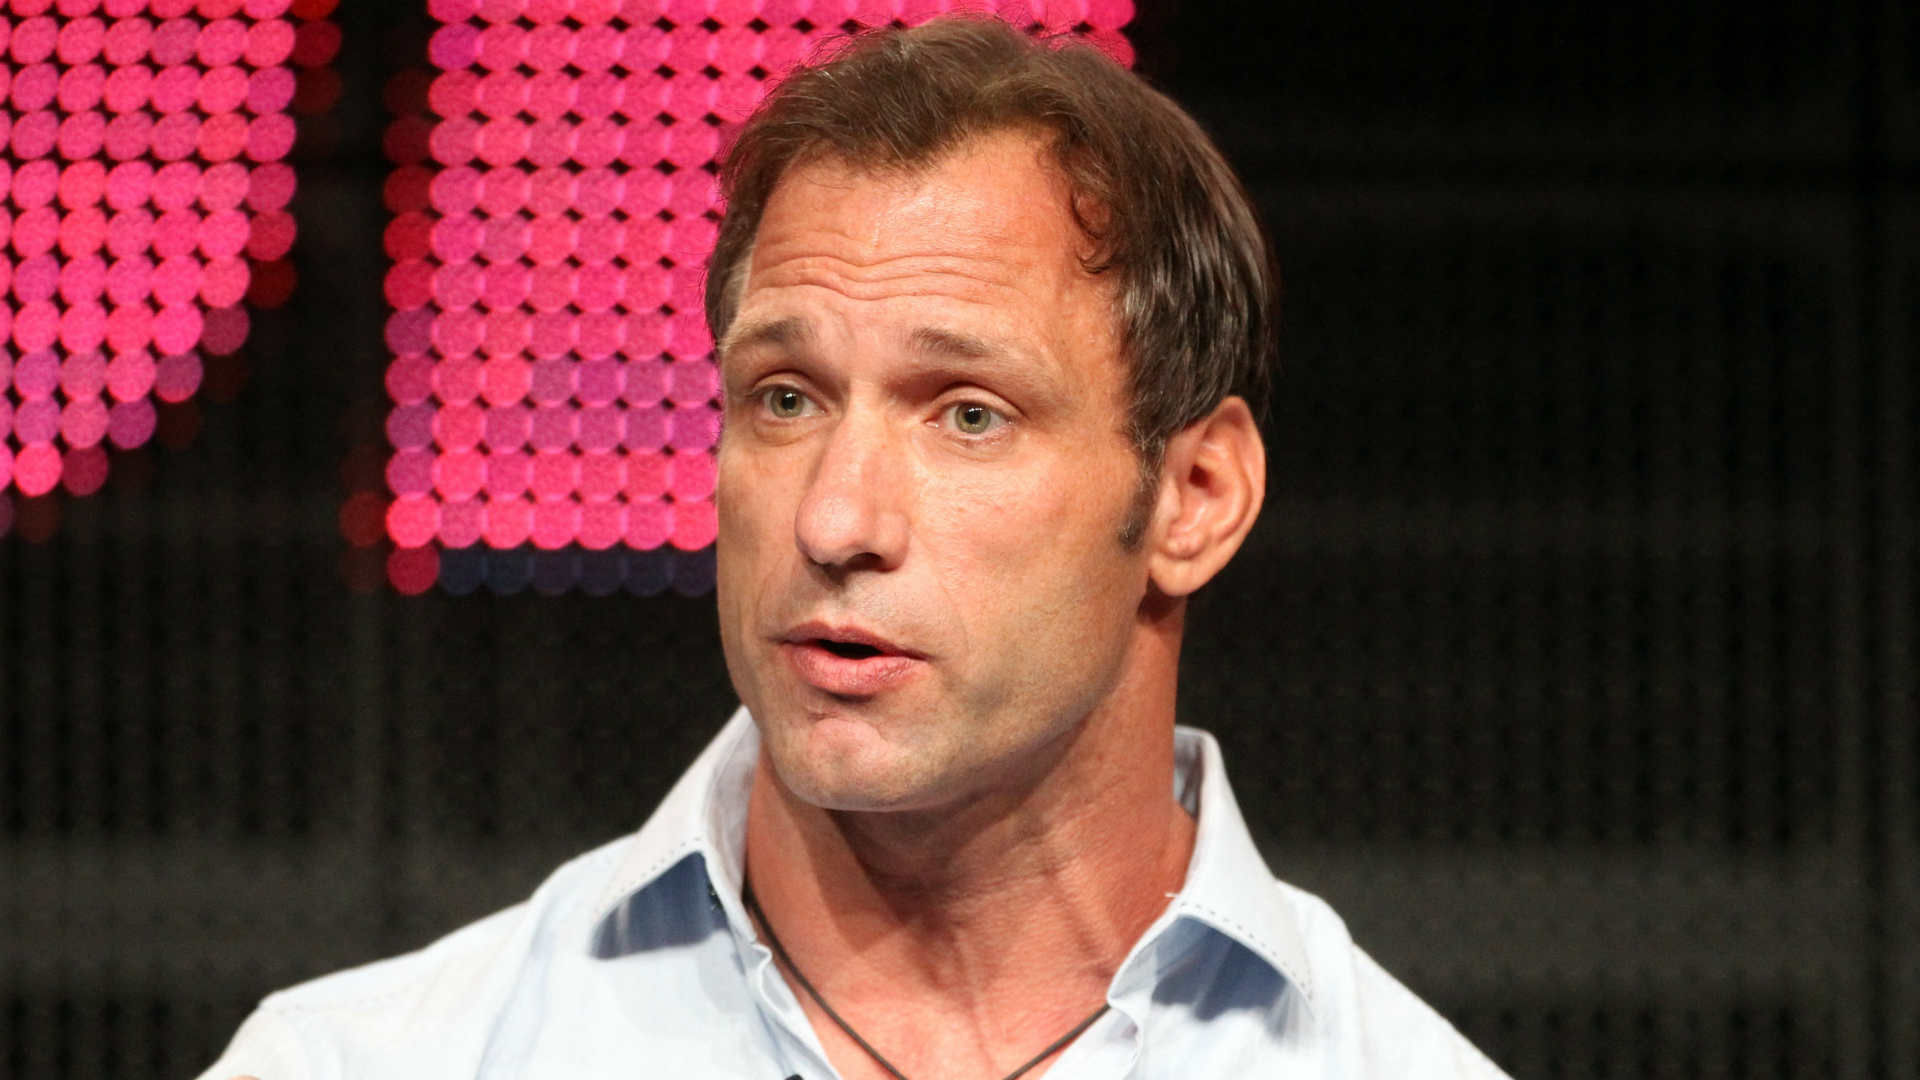 Chris Spielman Sues Ohio State for Using Athlete Images Without Permission